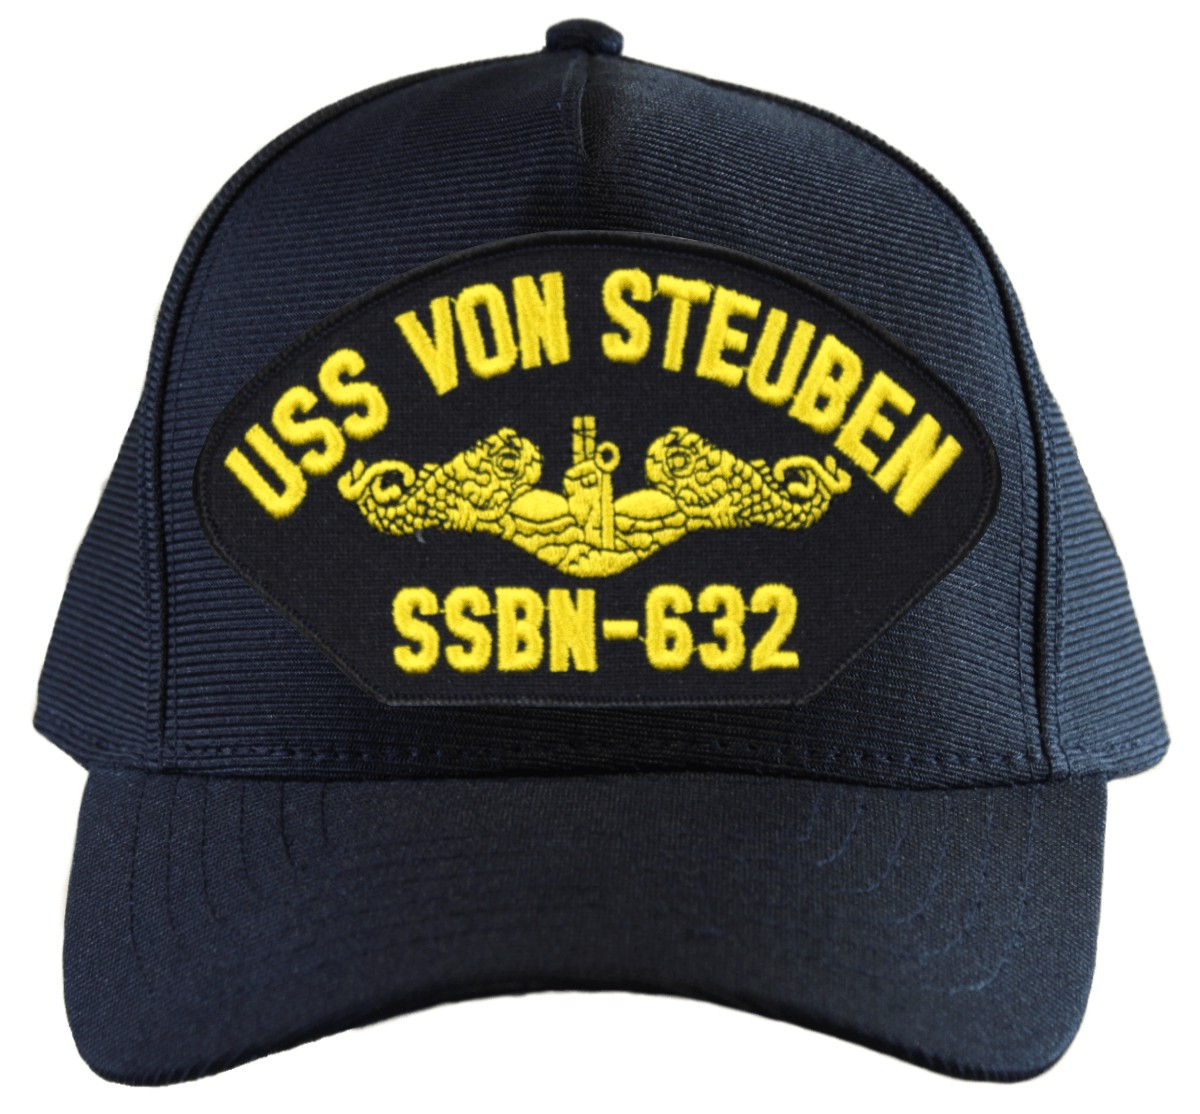 Made in USA Embroidered Submarine Ball Cap BC Patch USS Bugara SS 331